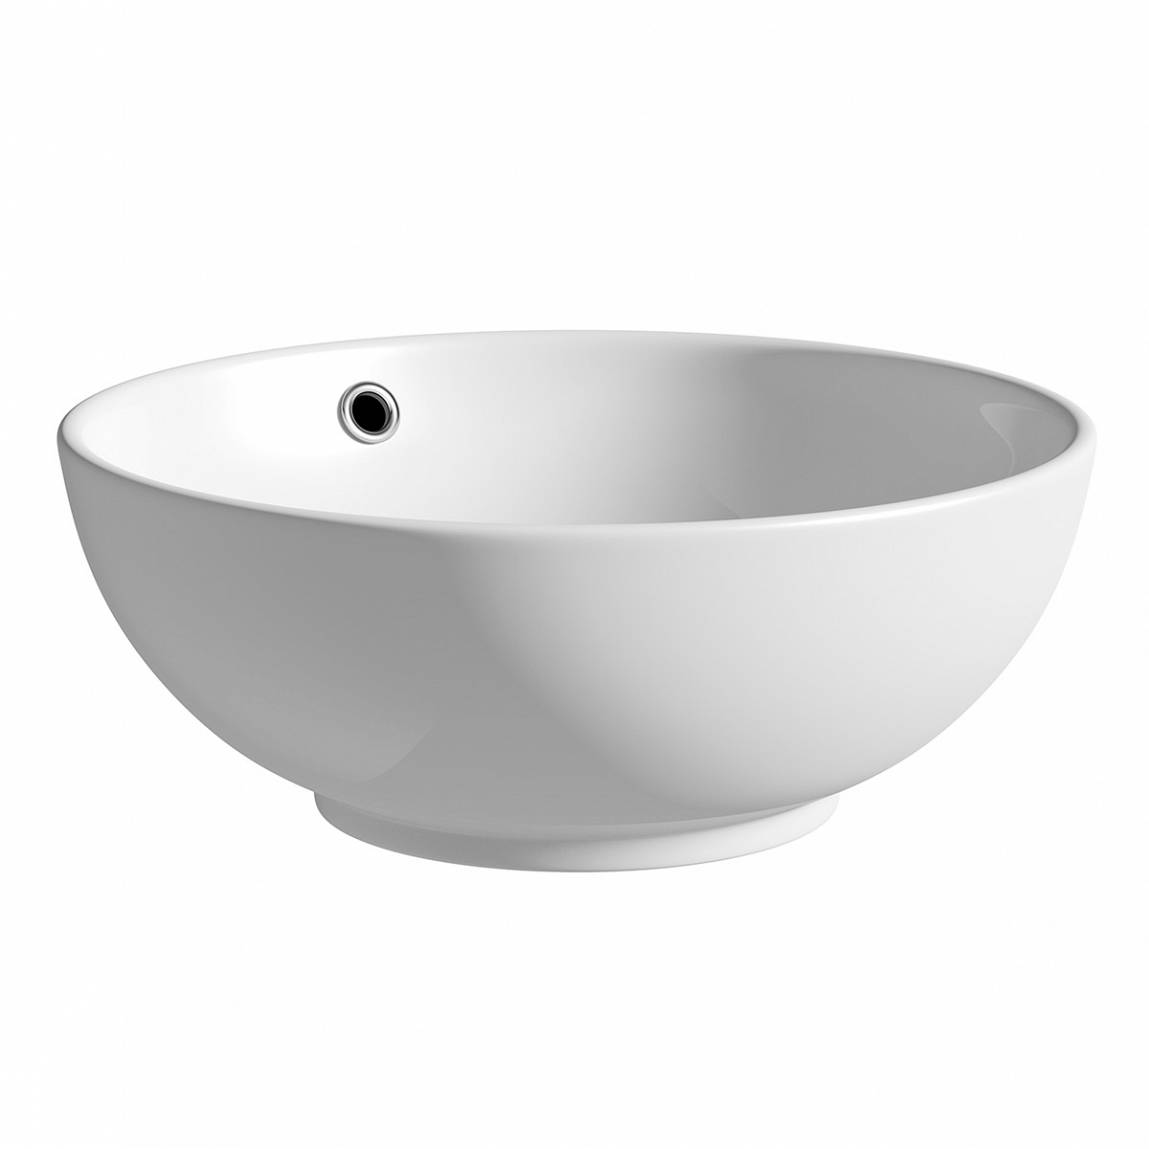 Image of Ronda Counter Top Basin